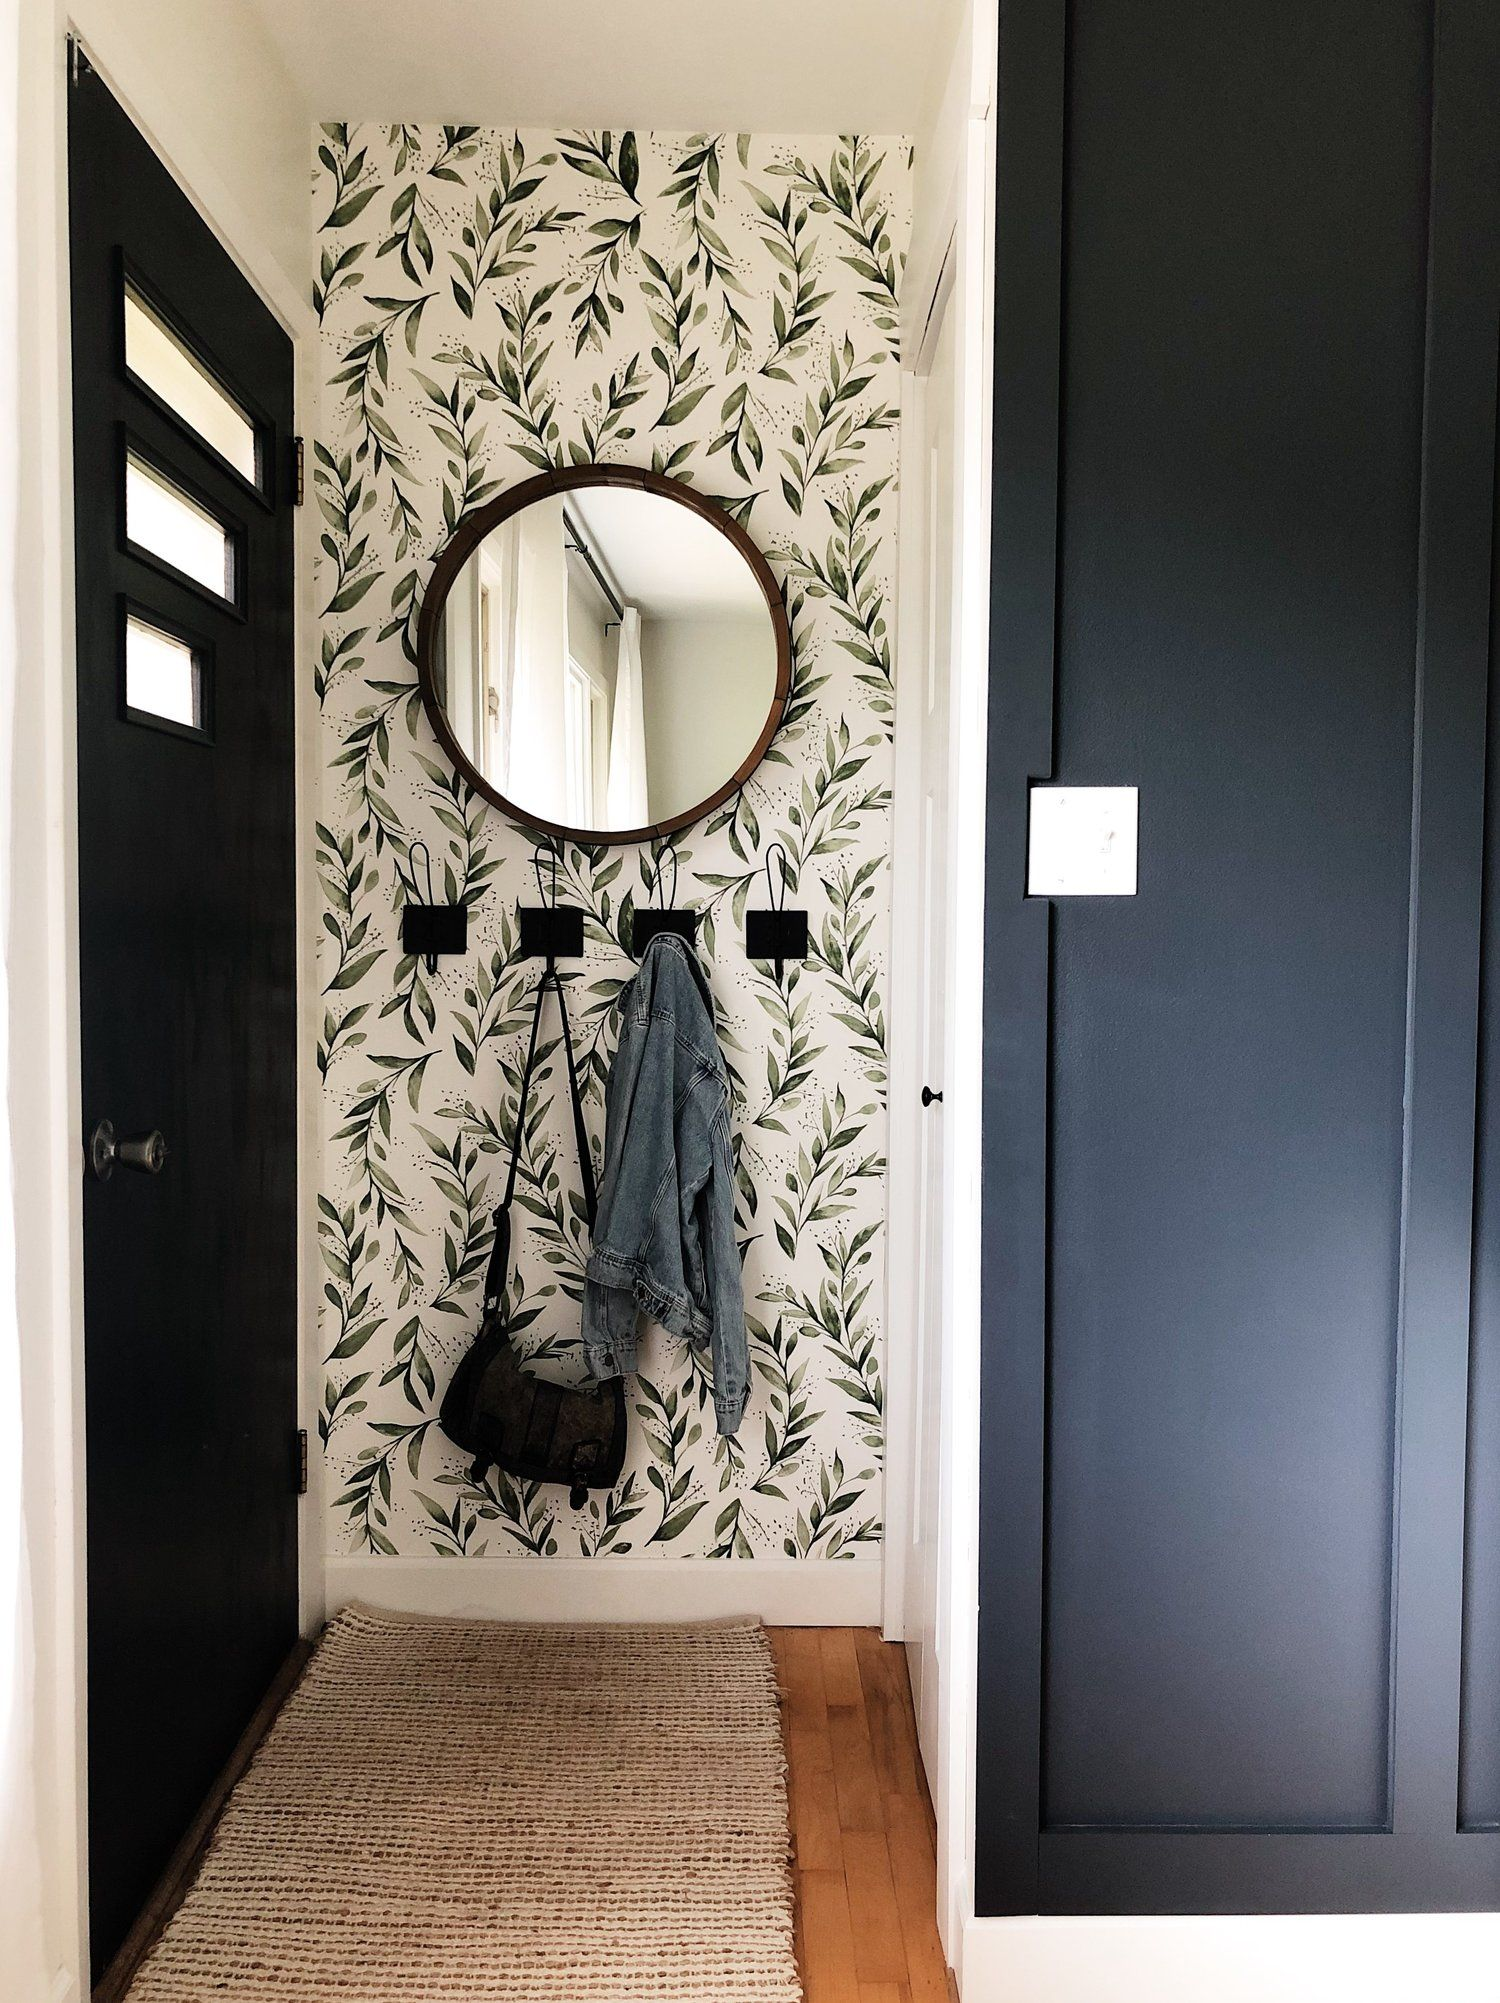 OUR NEW ENTRYWAY WALLPAPER & HOW TO INSTALL IT